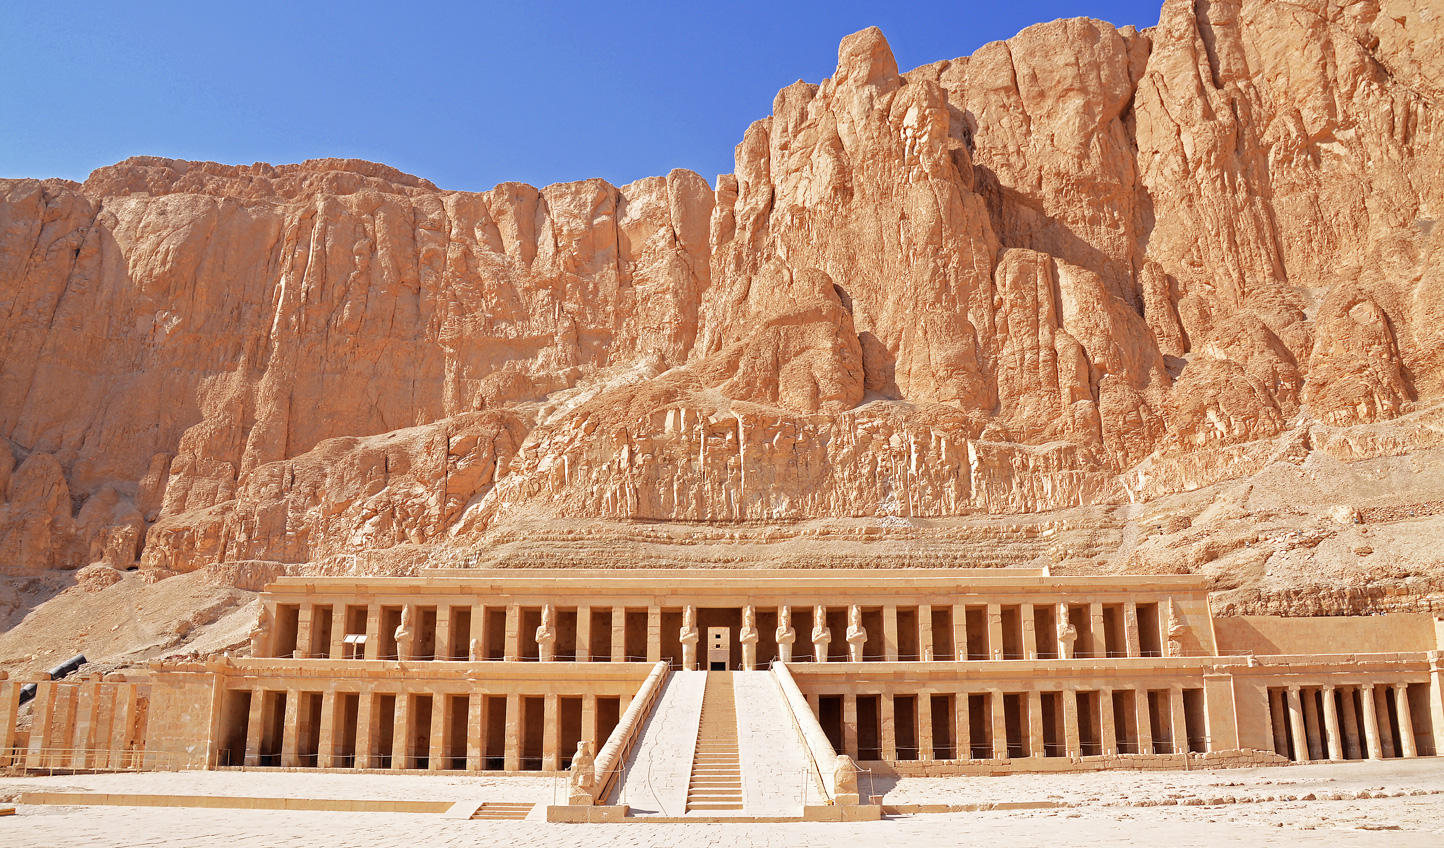 The vast Hatchepsut's Temple, carved into the mountainside